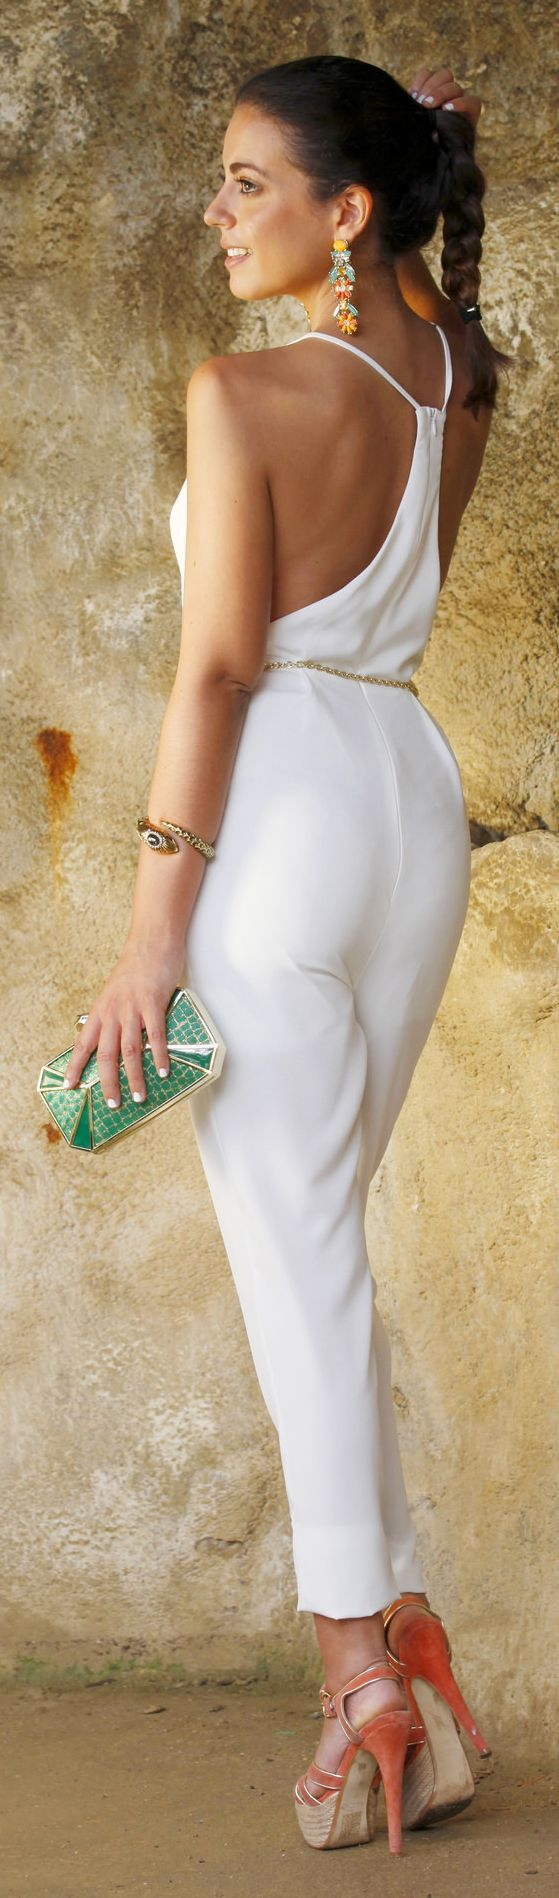 White Sunny Jumpsuit, green purse. Street summer elegant women fashion outfit clothing style apparel @roressclothes closet ideas